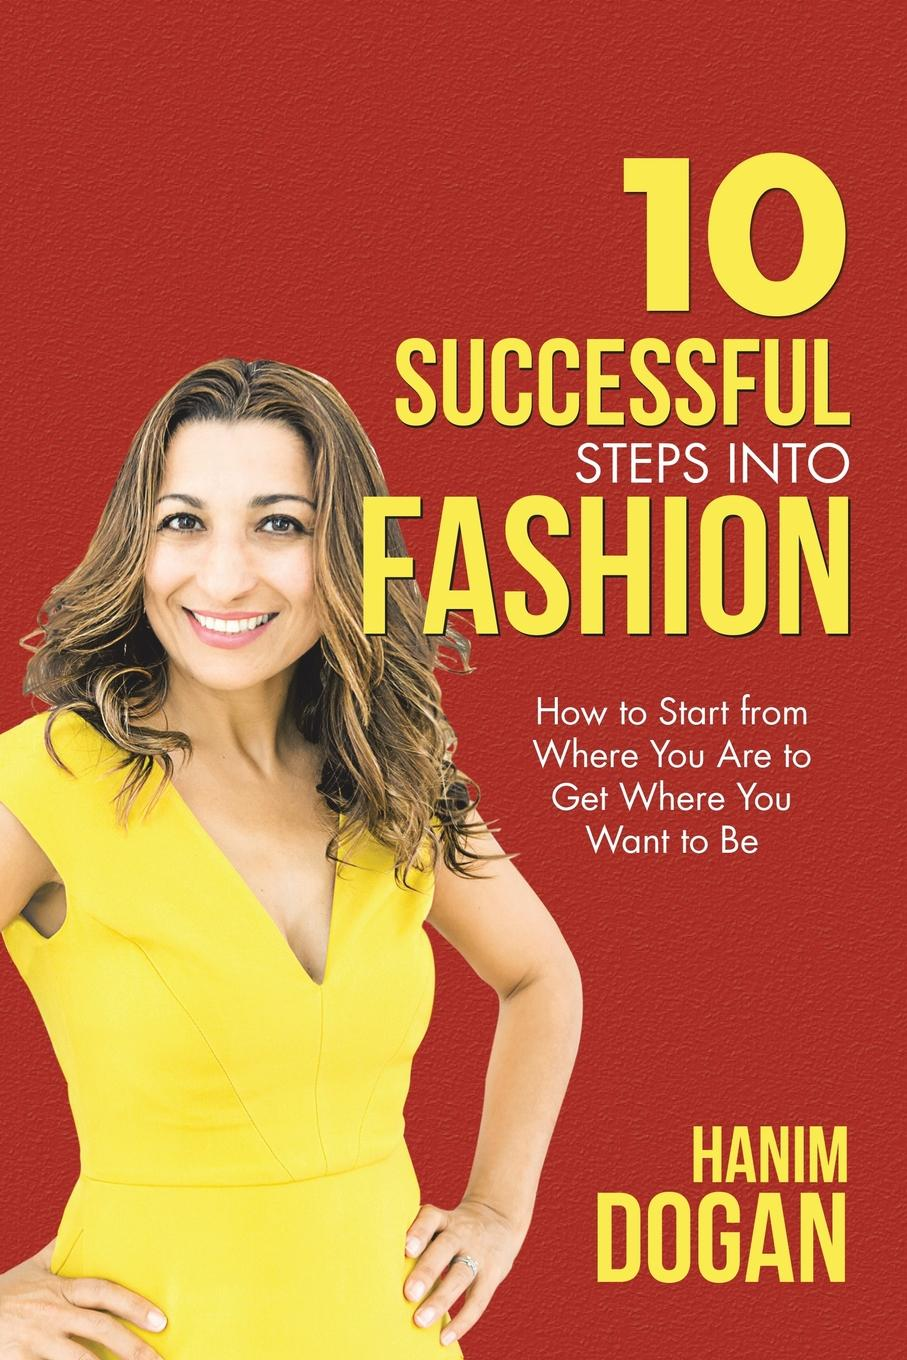 Hanim Dogan 10 Successful Steps Into Fashion. How to Start from Where You Are to Get Where You Want to Be john beeson the unwritten rules the six skills you need to get promoted to the executive level